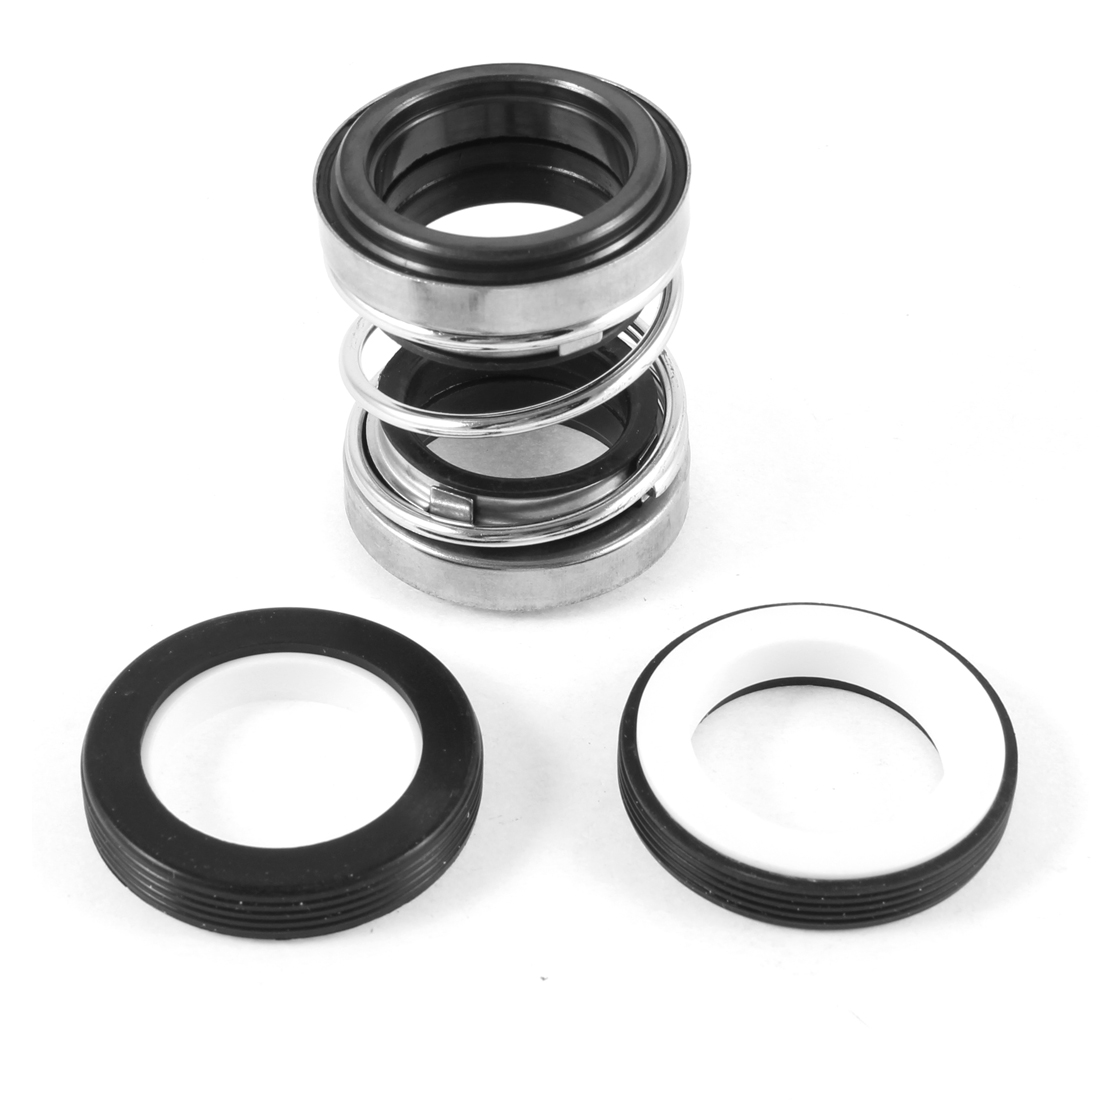 HM208-25 25mm Inner Diameter Single Coil Spring Bellows Mechanical Seal